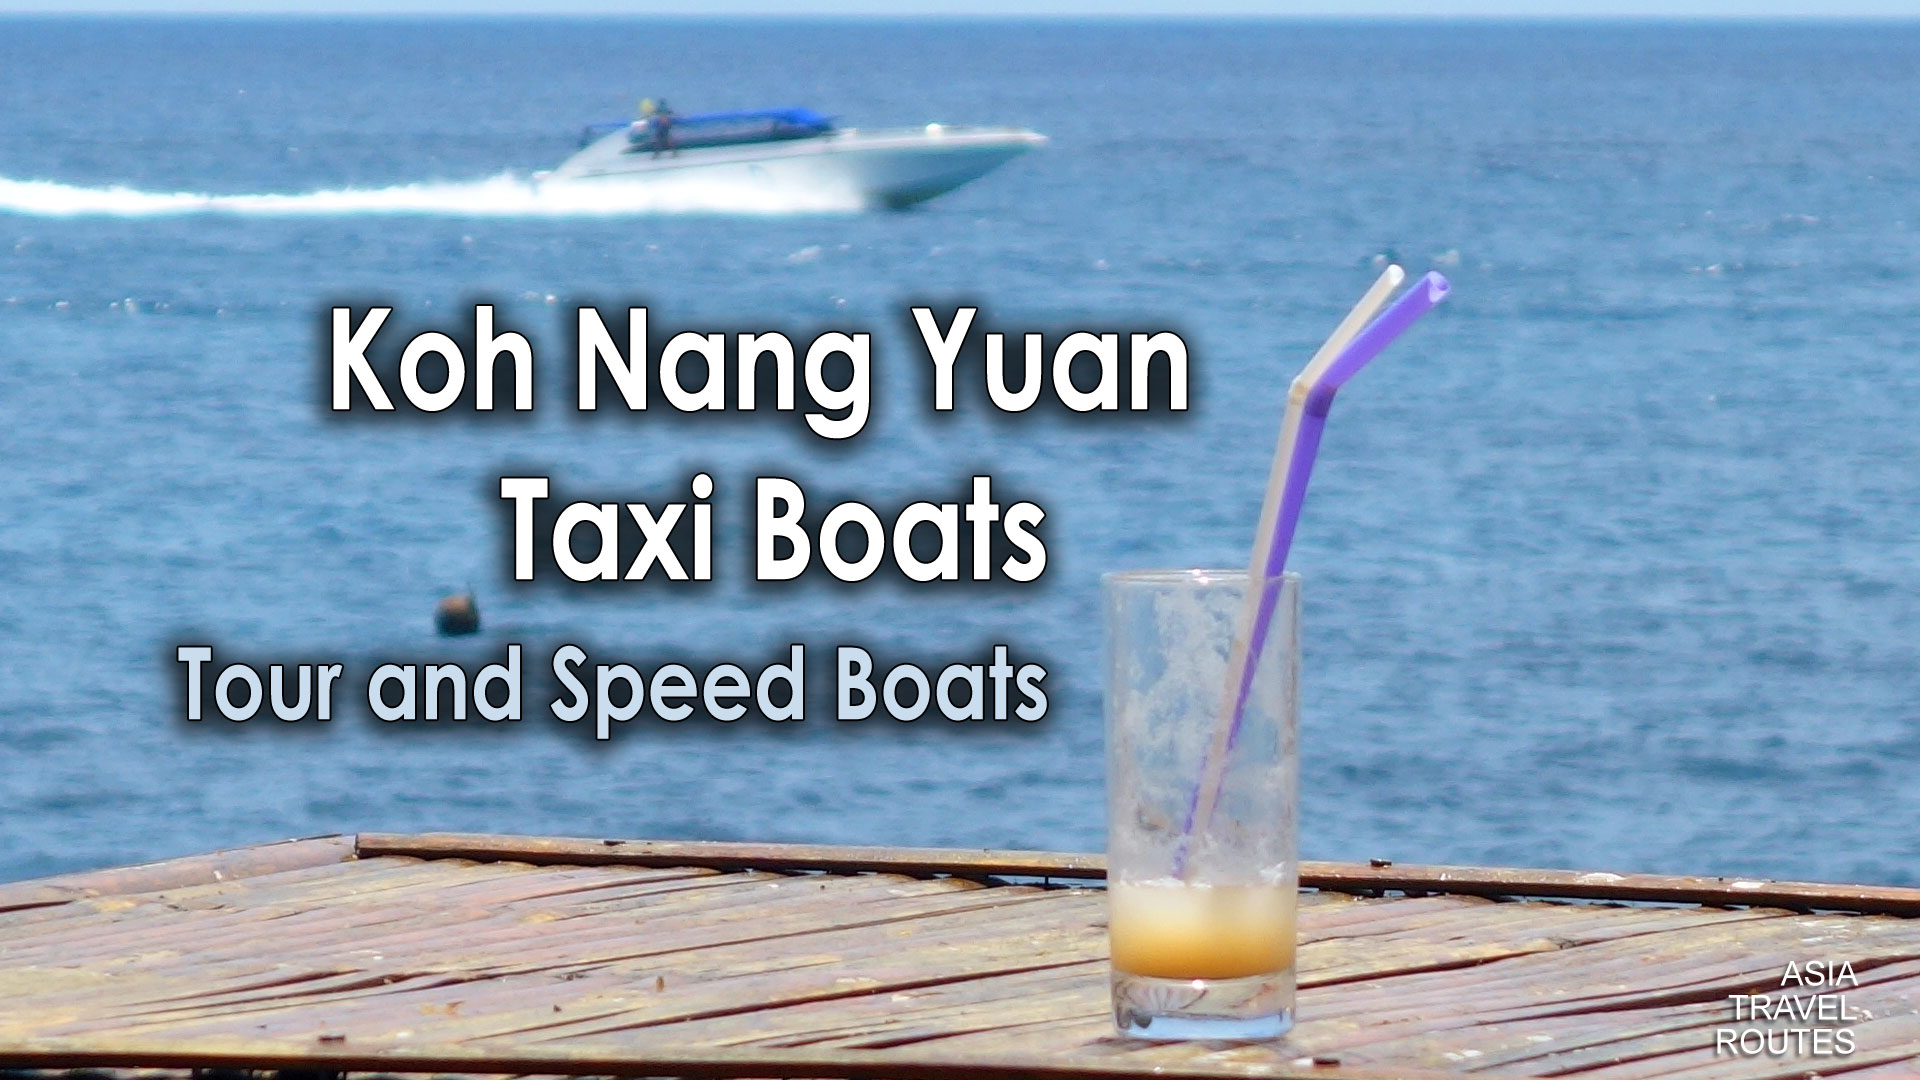 Koh Nang Yuan Taxi Boats, Tour and Speed Boats